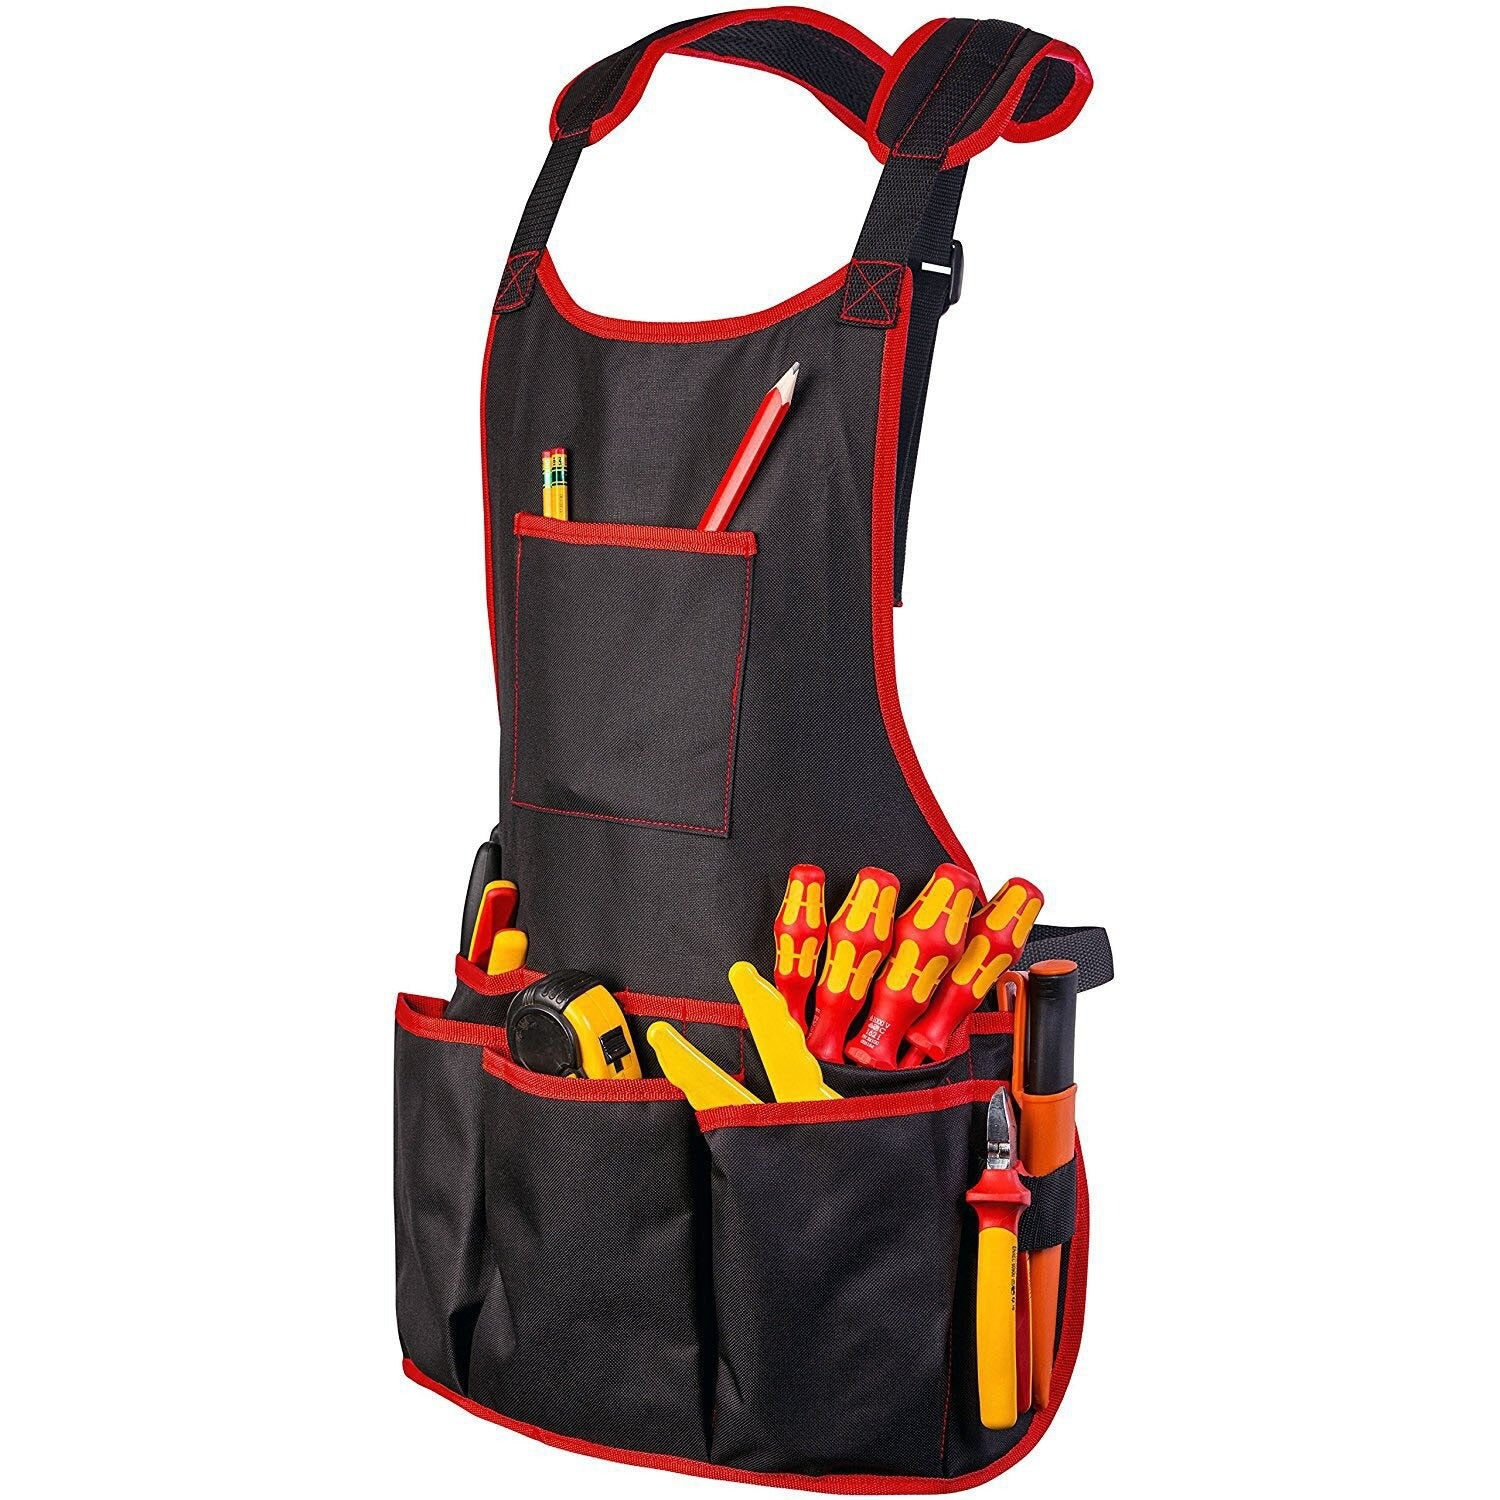 Electrician Tool <br /> Apron